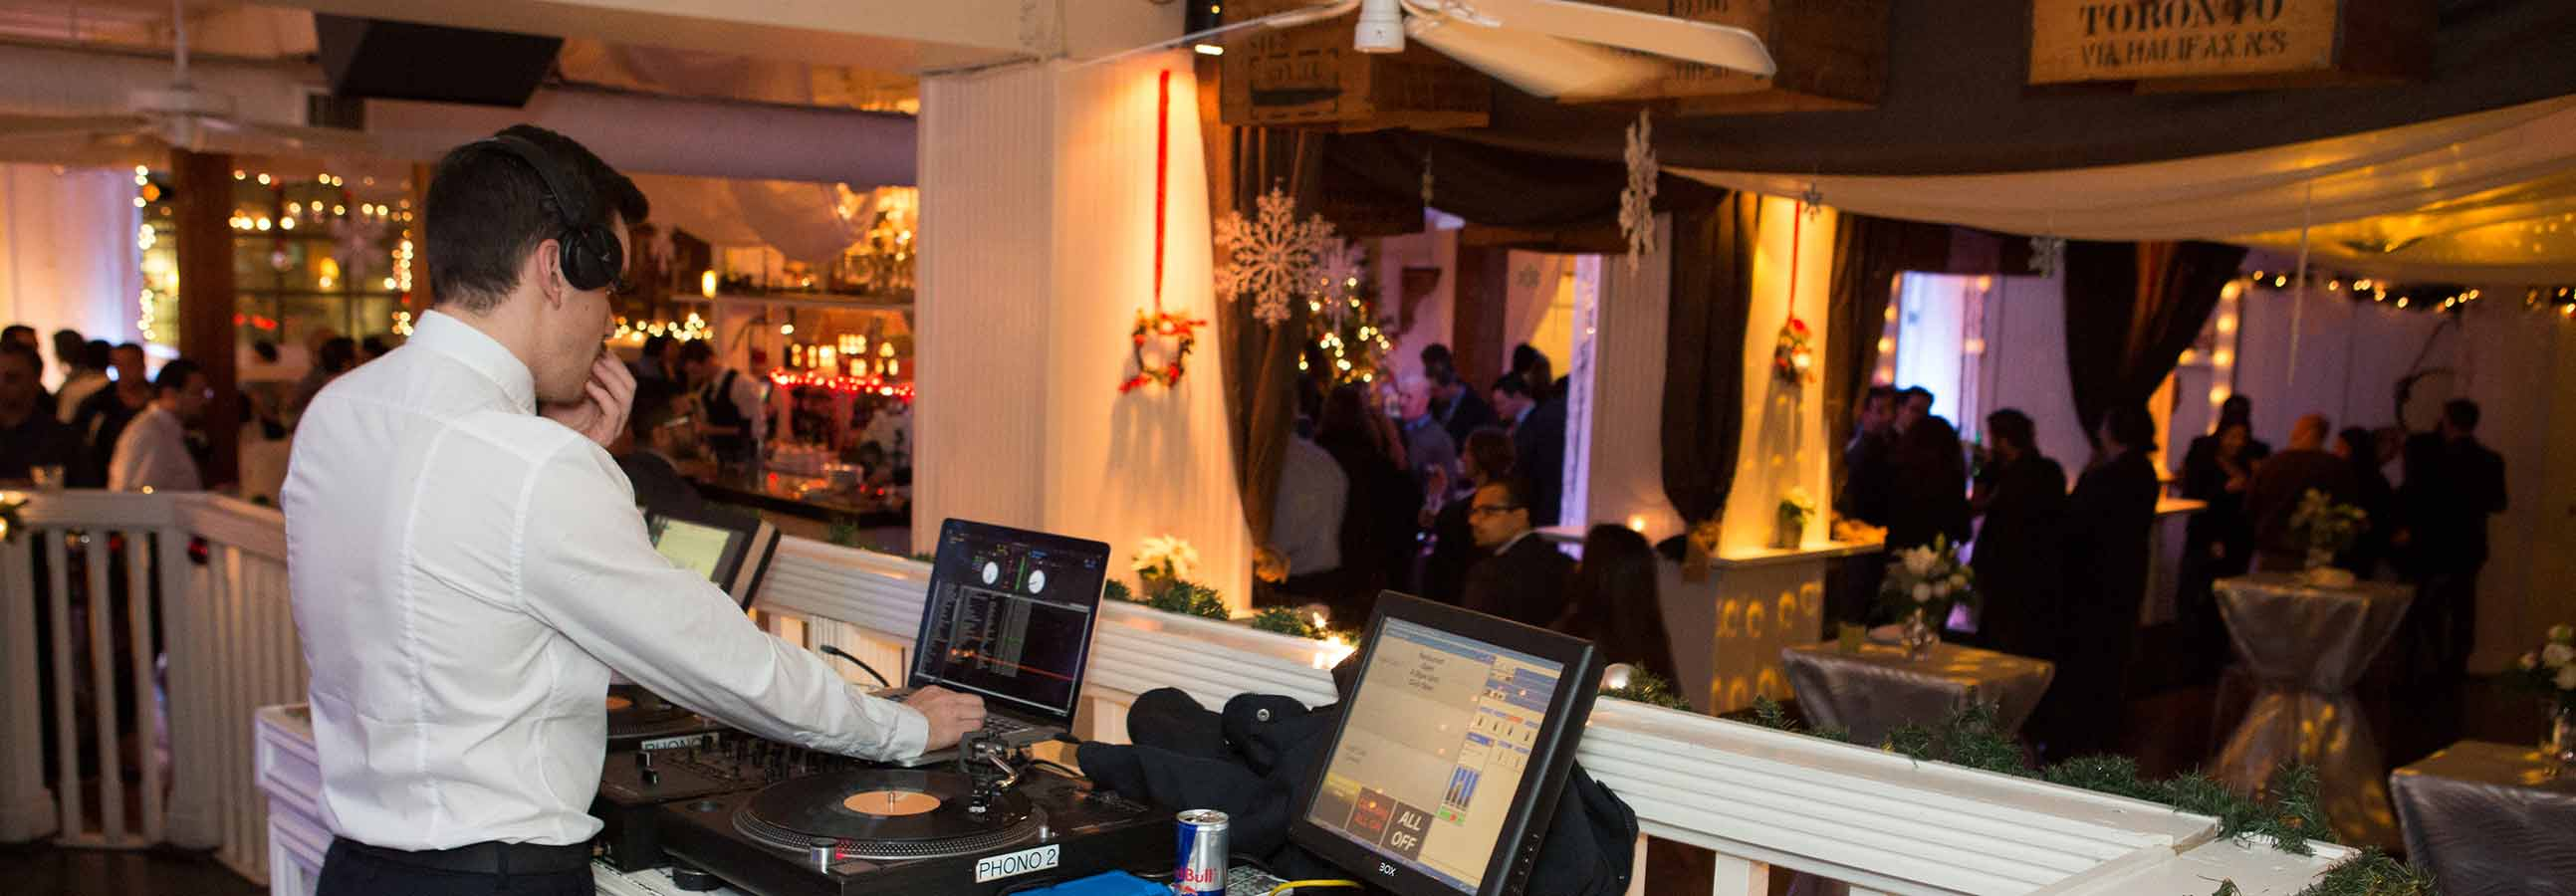 Toronto Event Venues - Holiday Party - Urban Loft with DJ Booth